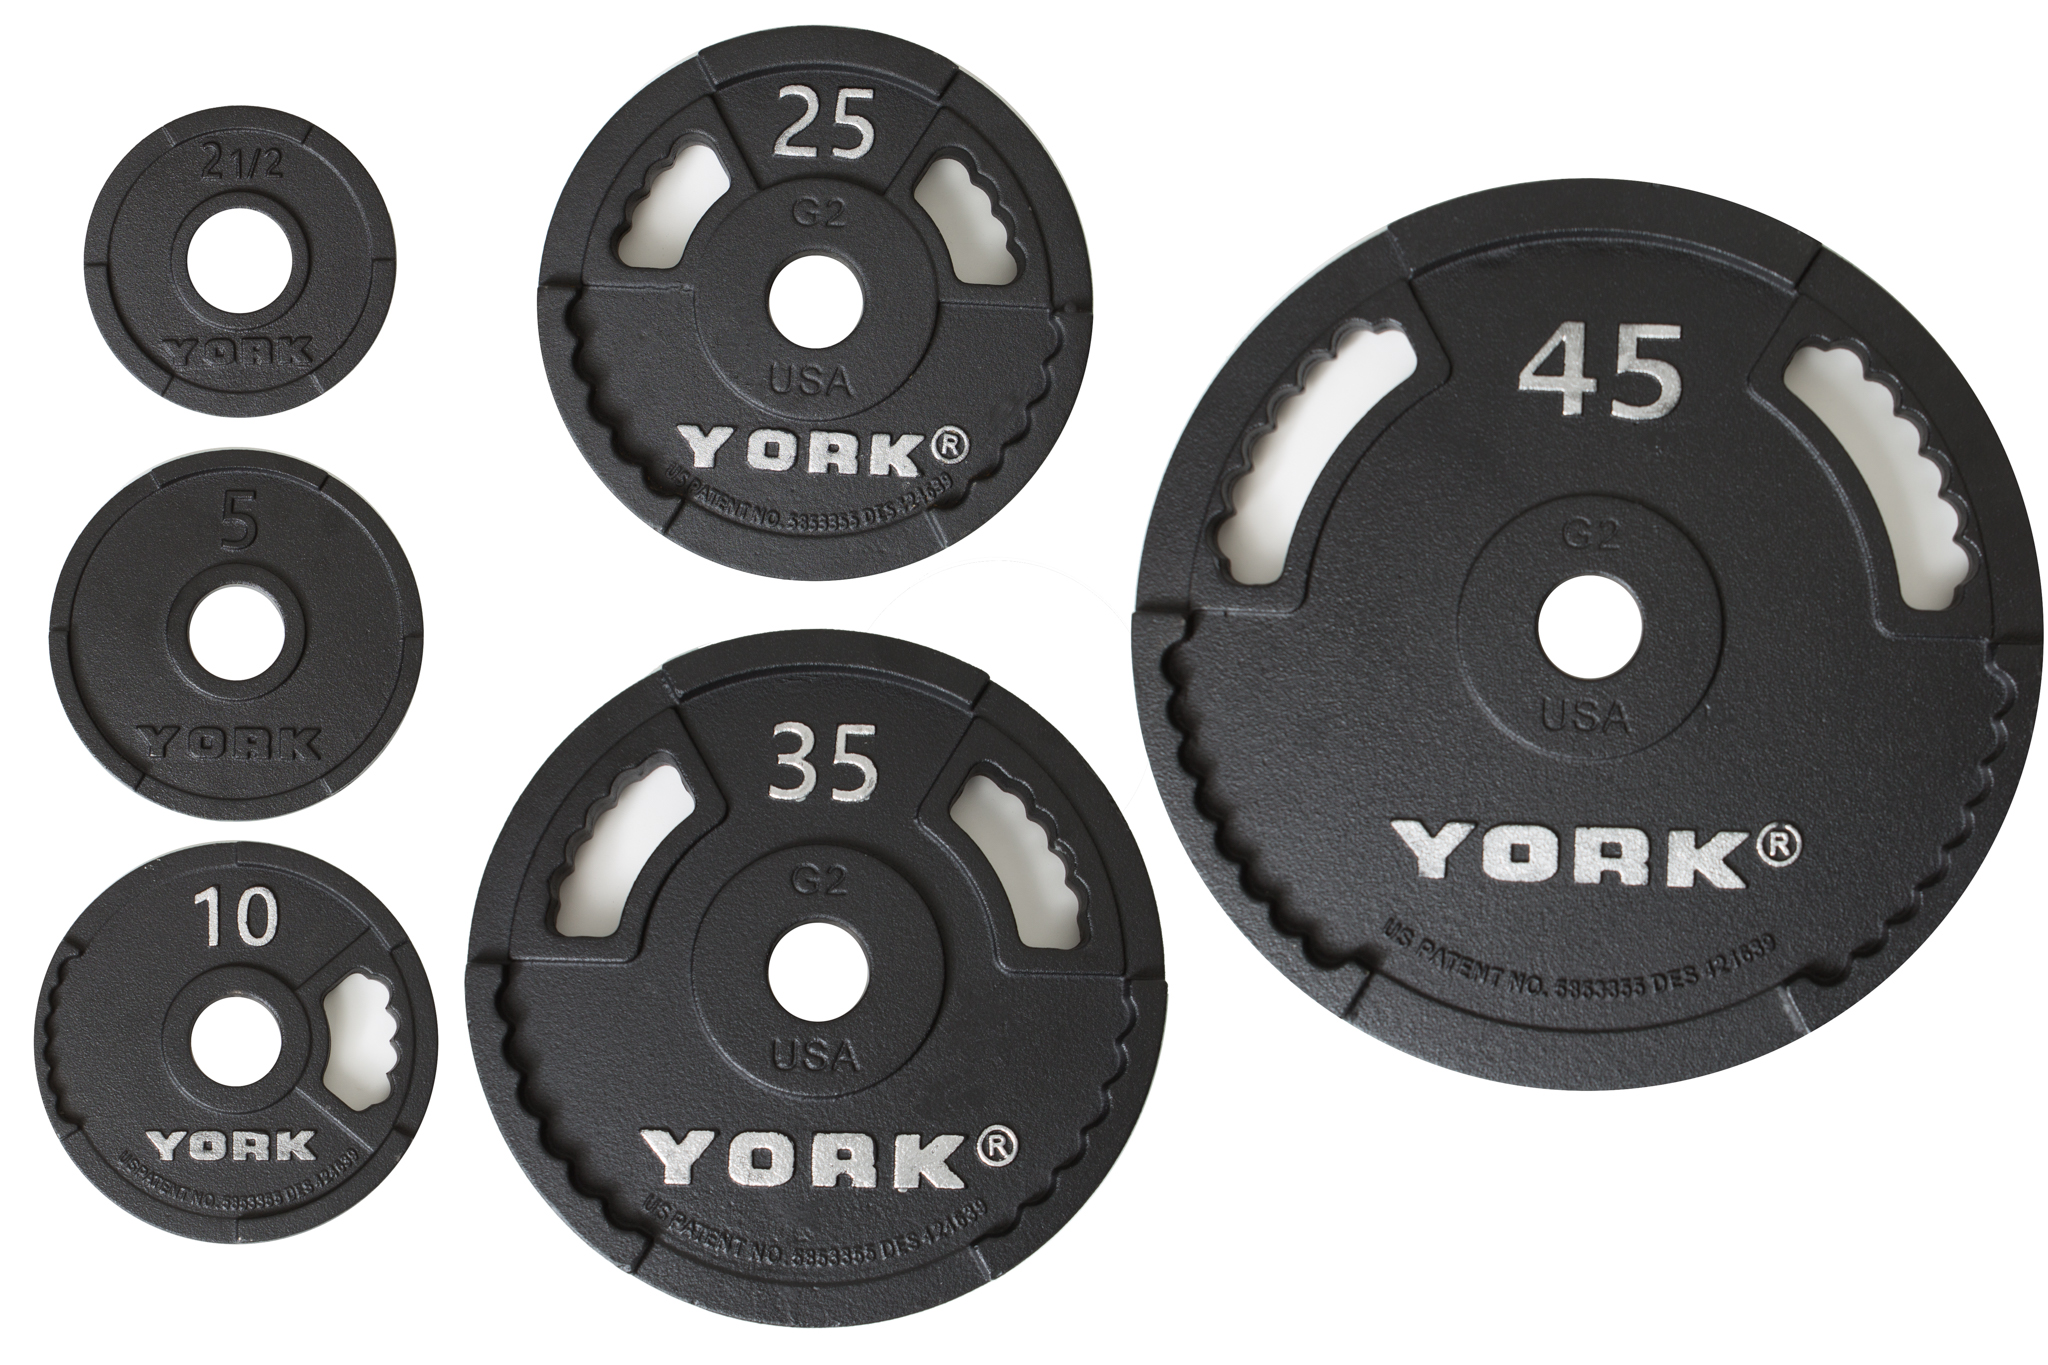 2\u2033 G-2 Cast Iron Olympic Weight Plate  sc 1 st  York Barbell & 2\